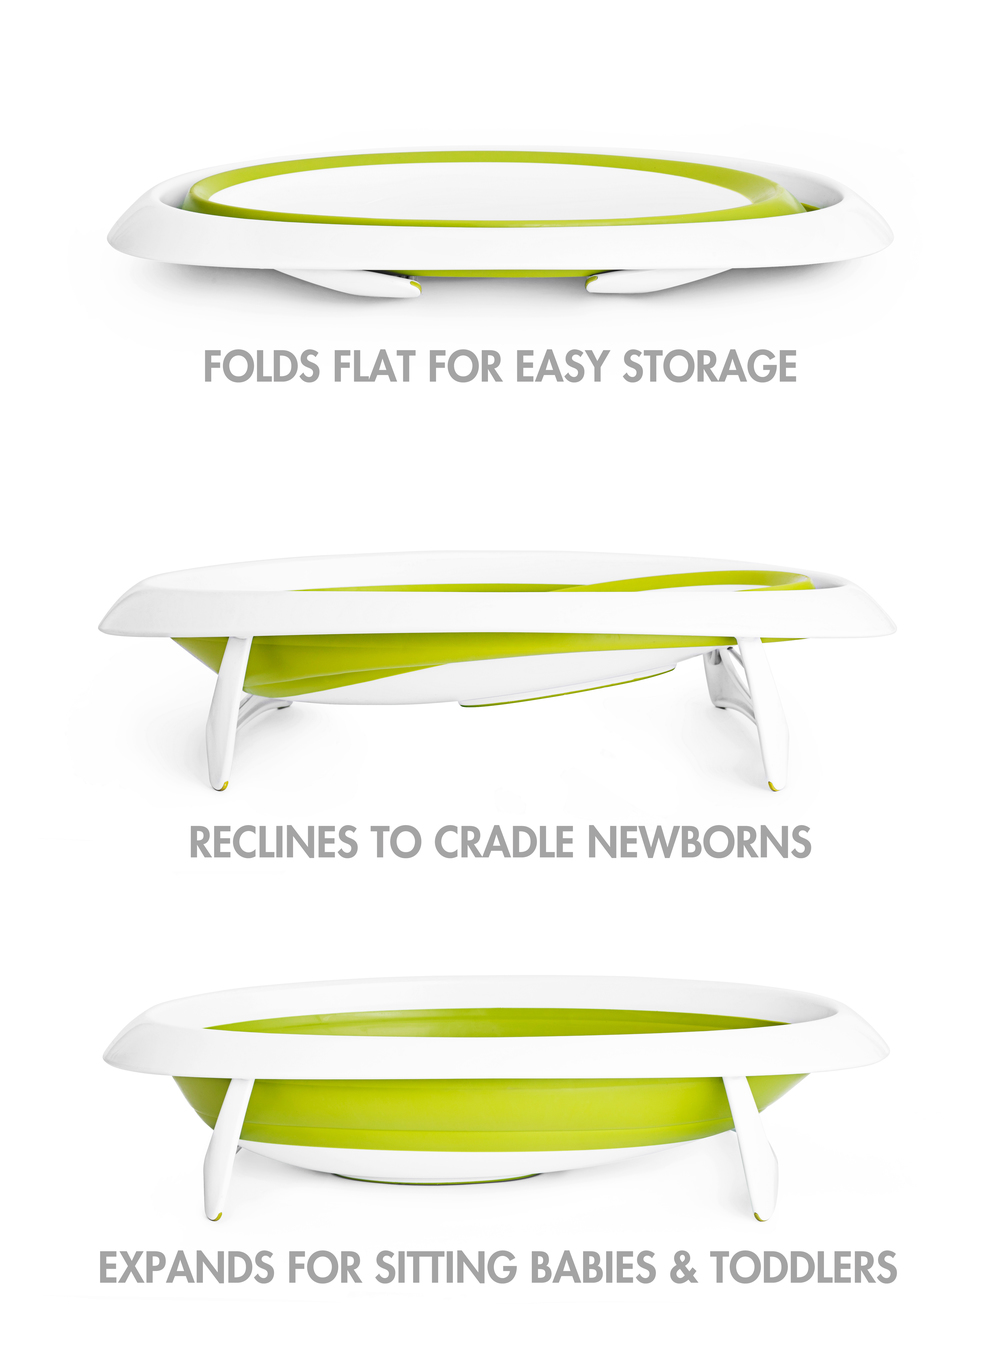 Boon Collapsible Baby Bath - great for travel and every day use!